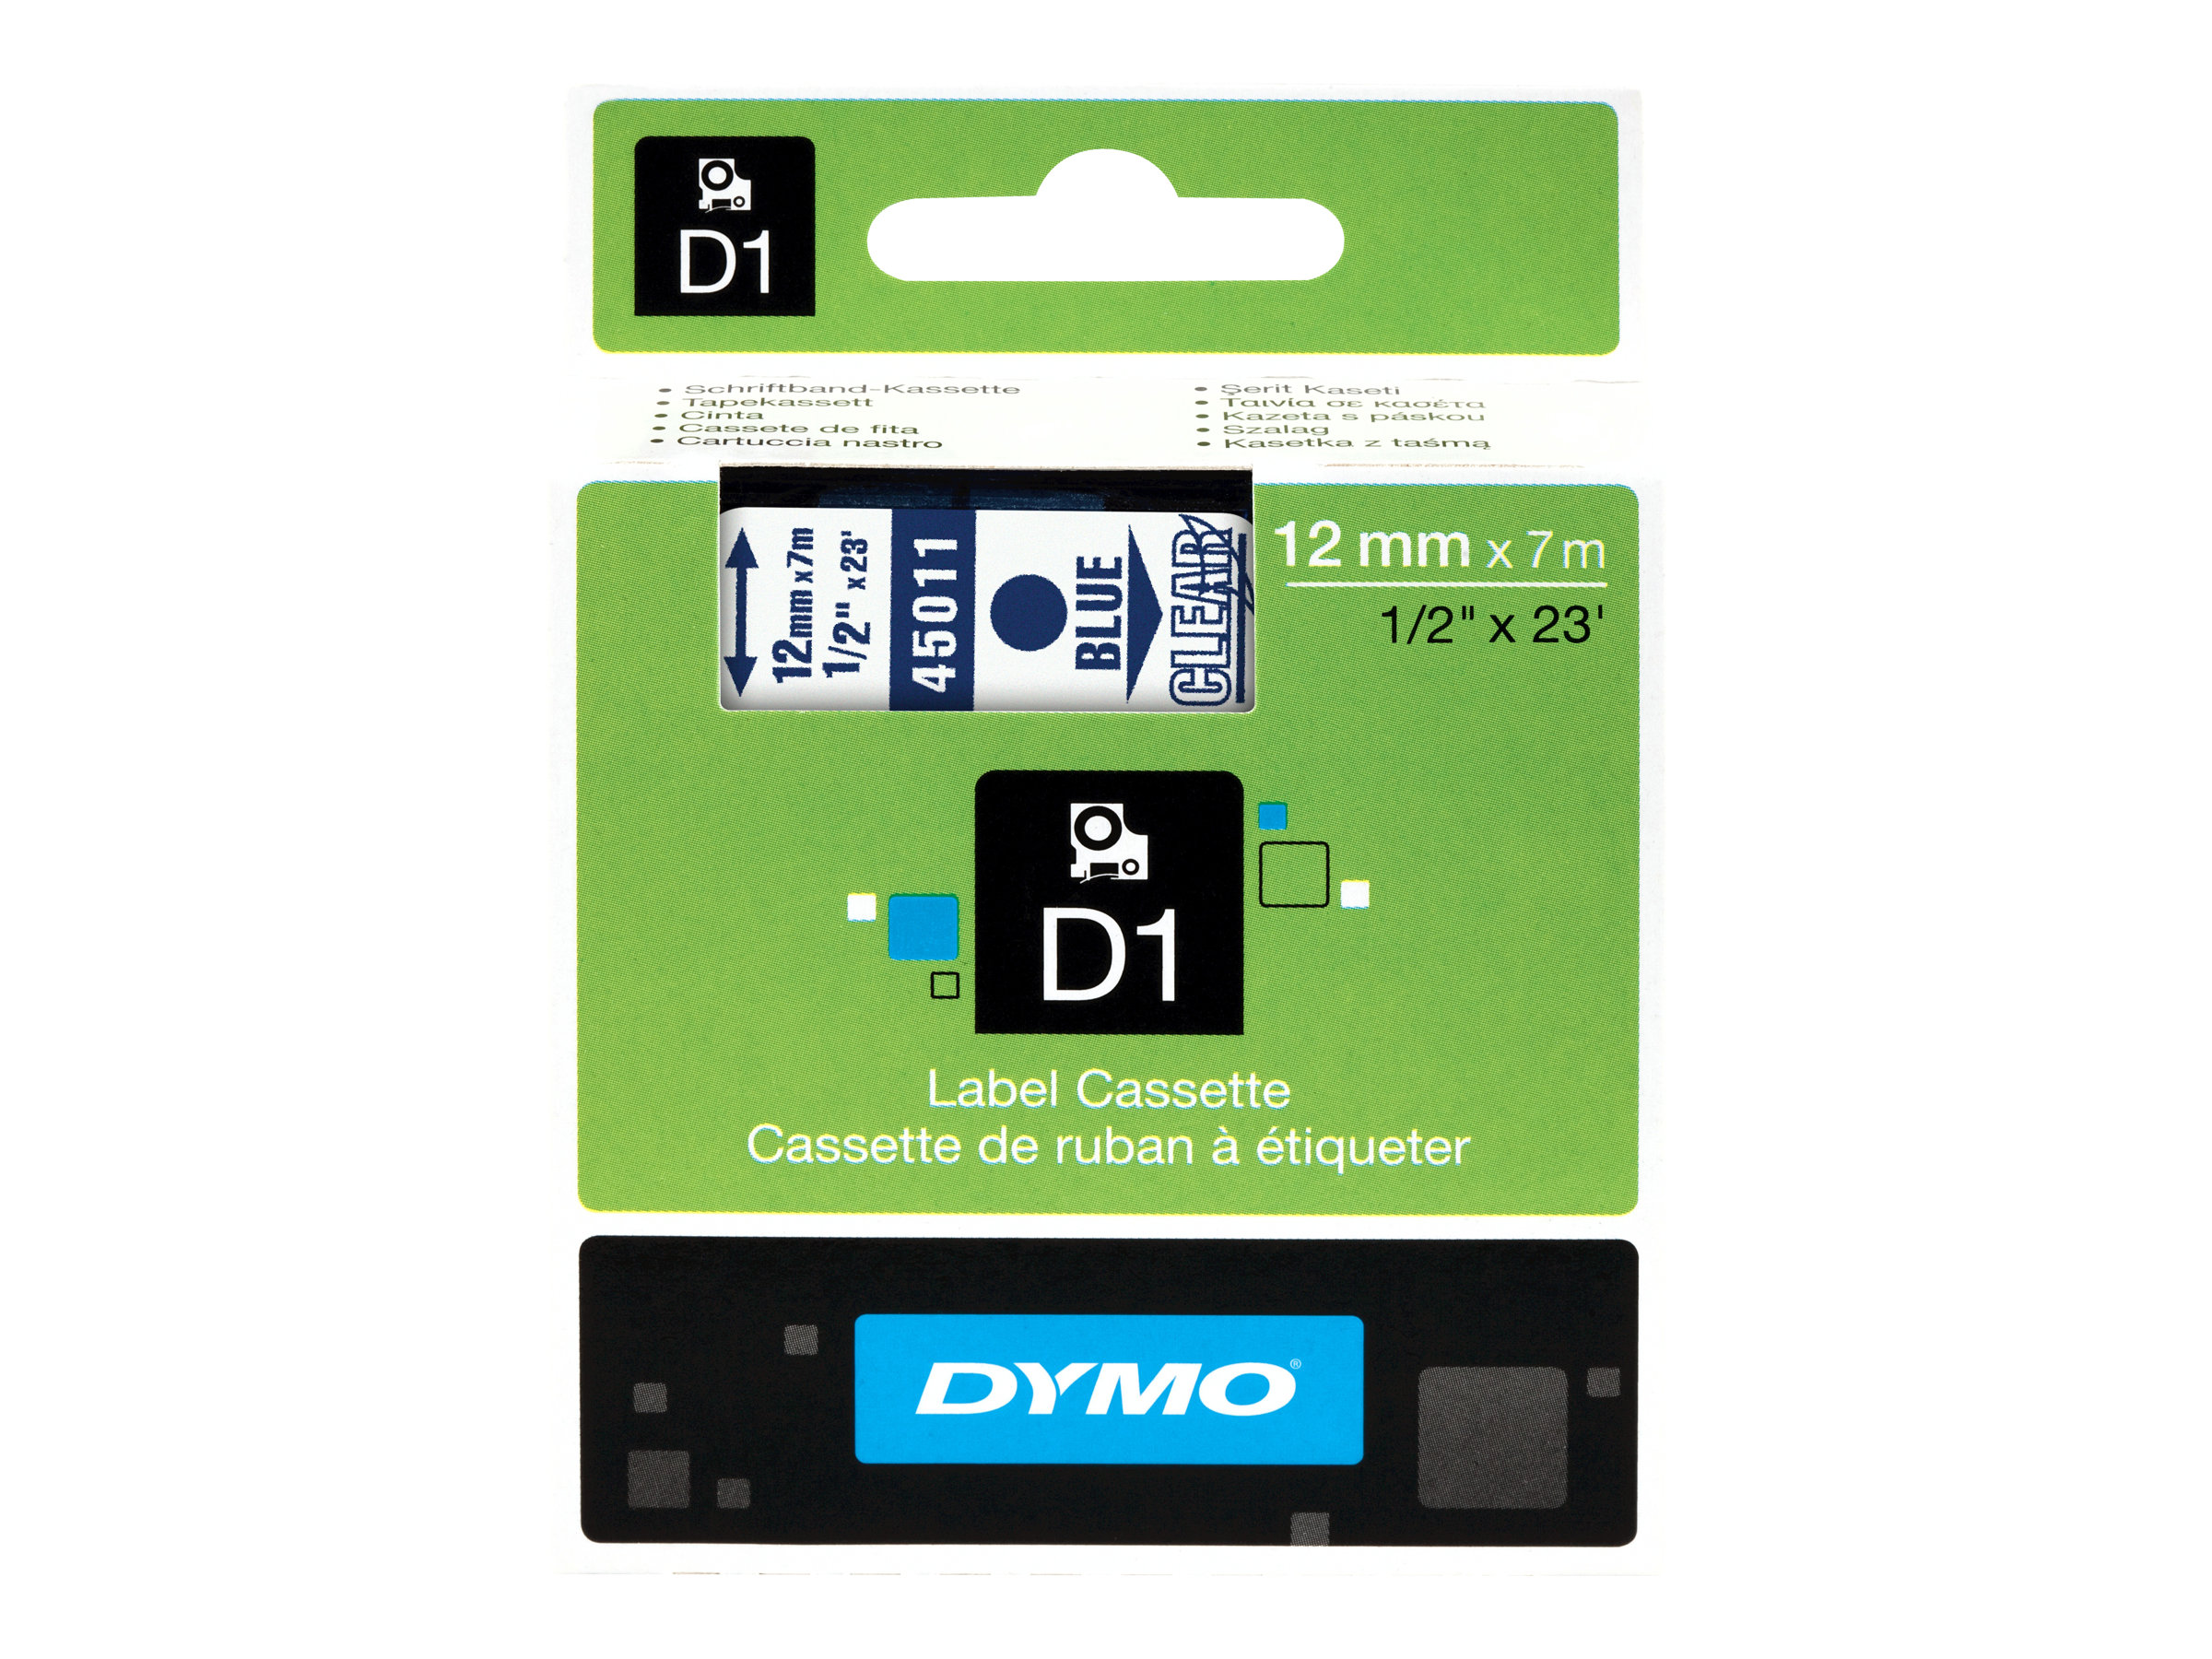 DYMO D1 - Selbstklebend - Blue On Transparent - Rolle (1,2 cm x 7 m) 1 Rolle(n) Etikettenband - für LabelMANAGER 150, 350, 350D,